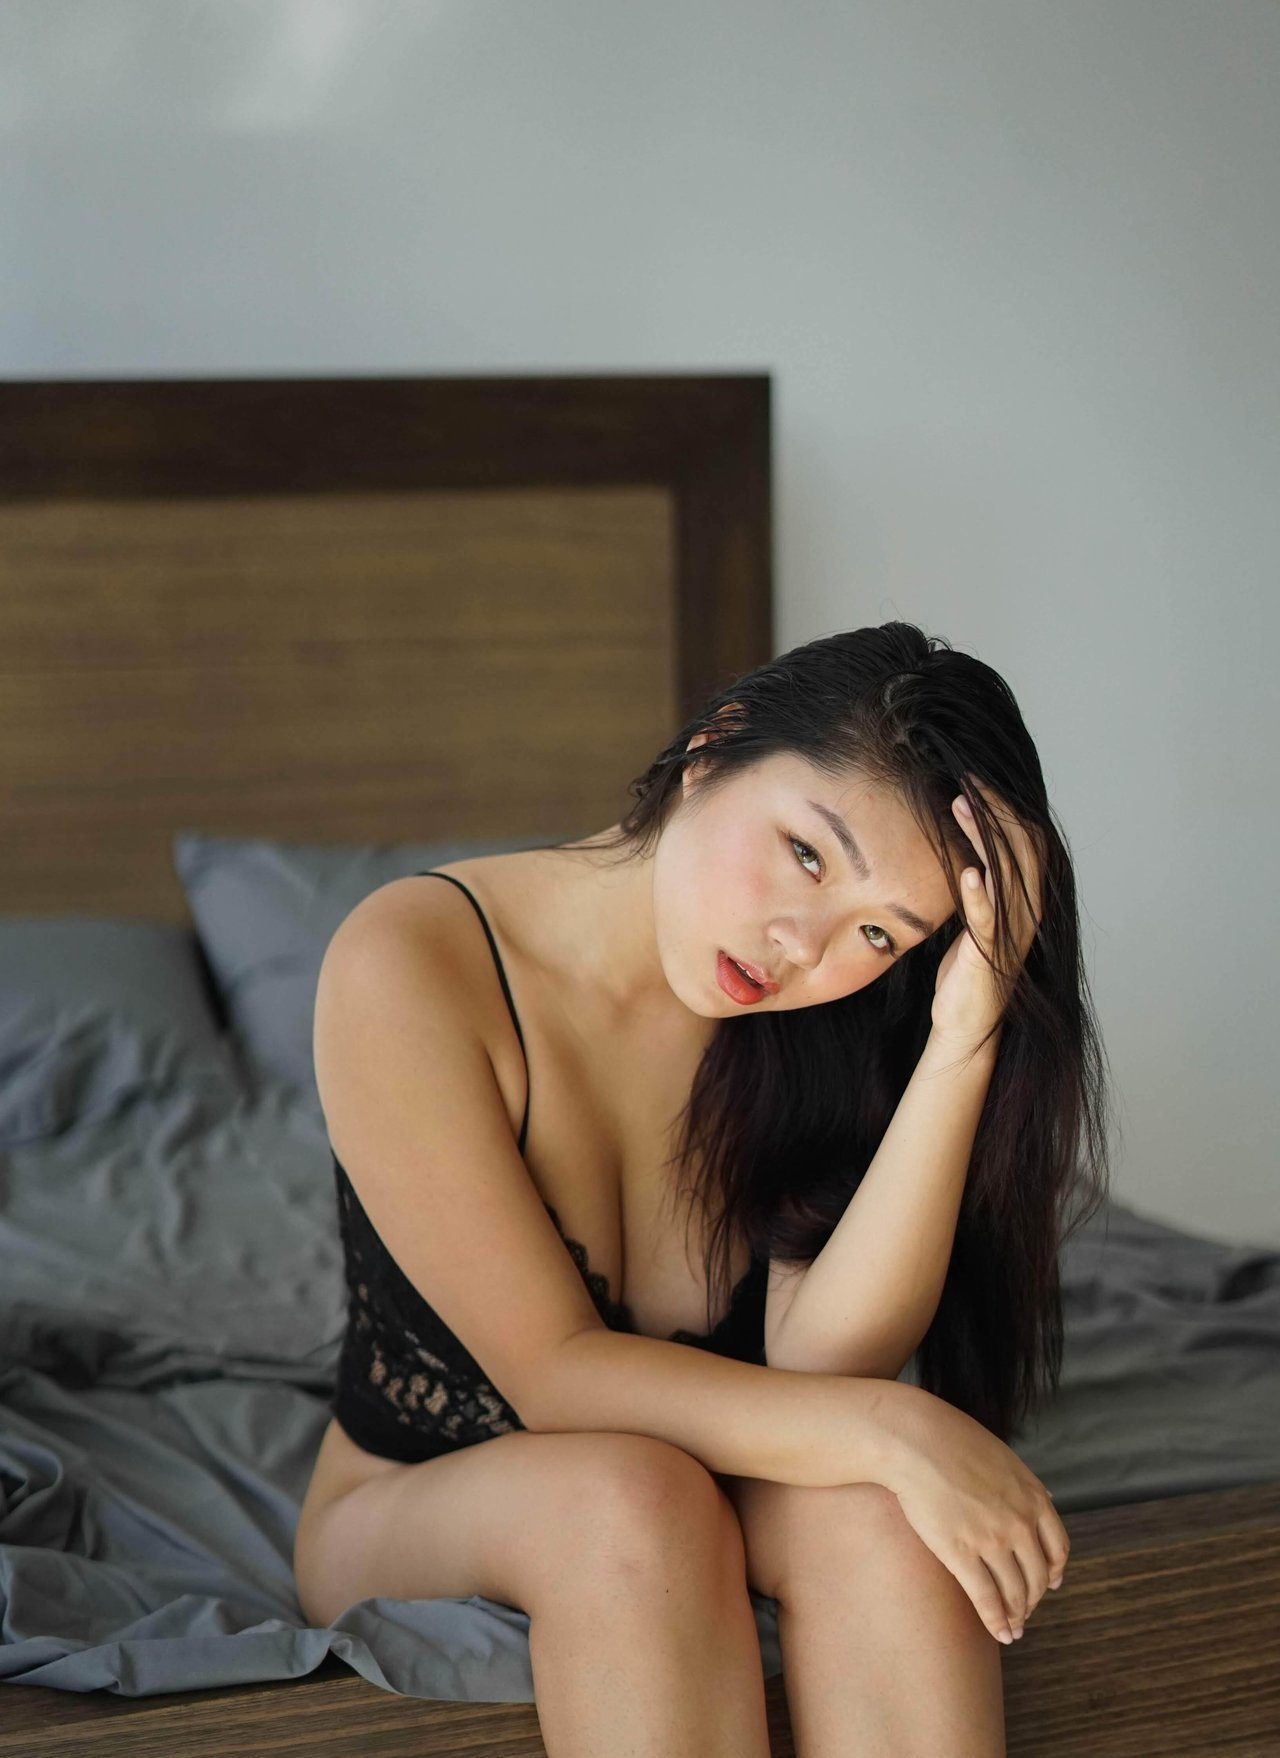 Shanghai Shawty Xanqiue Onlyfans Sexy Leaks 0014